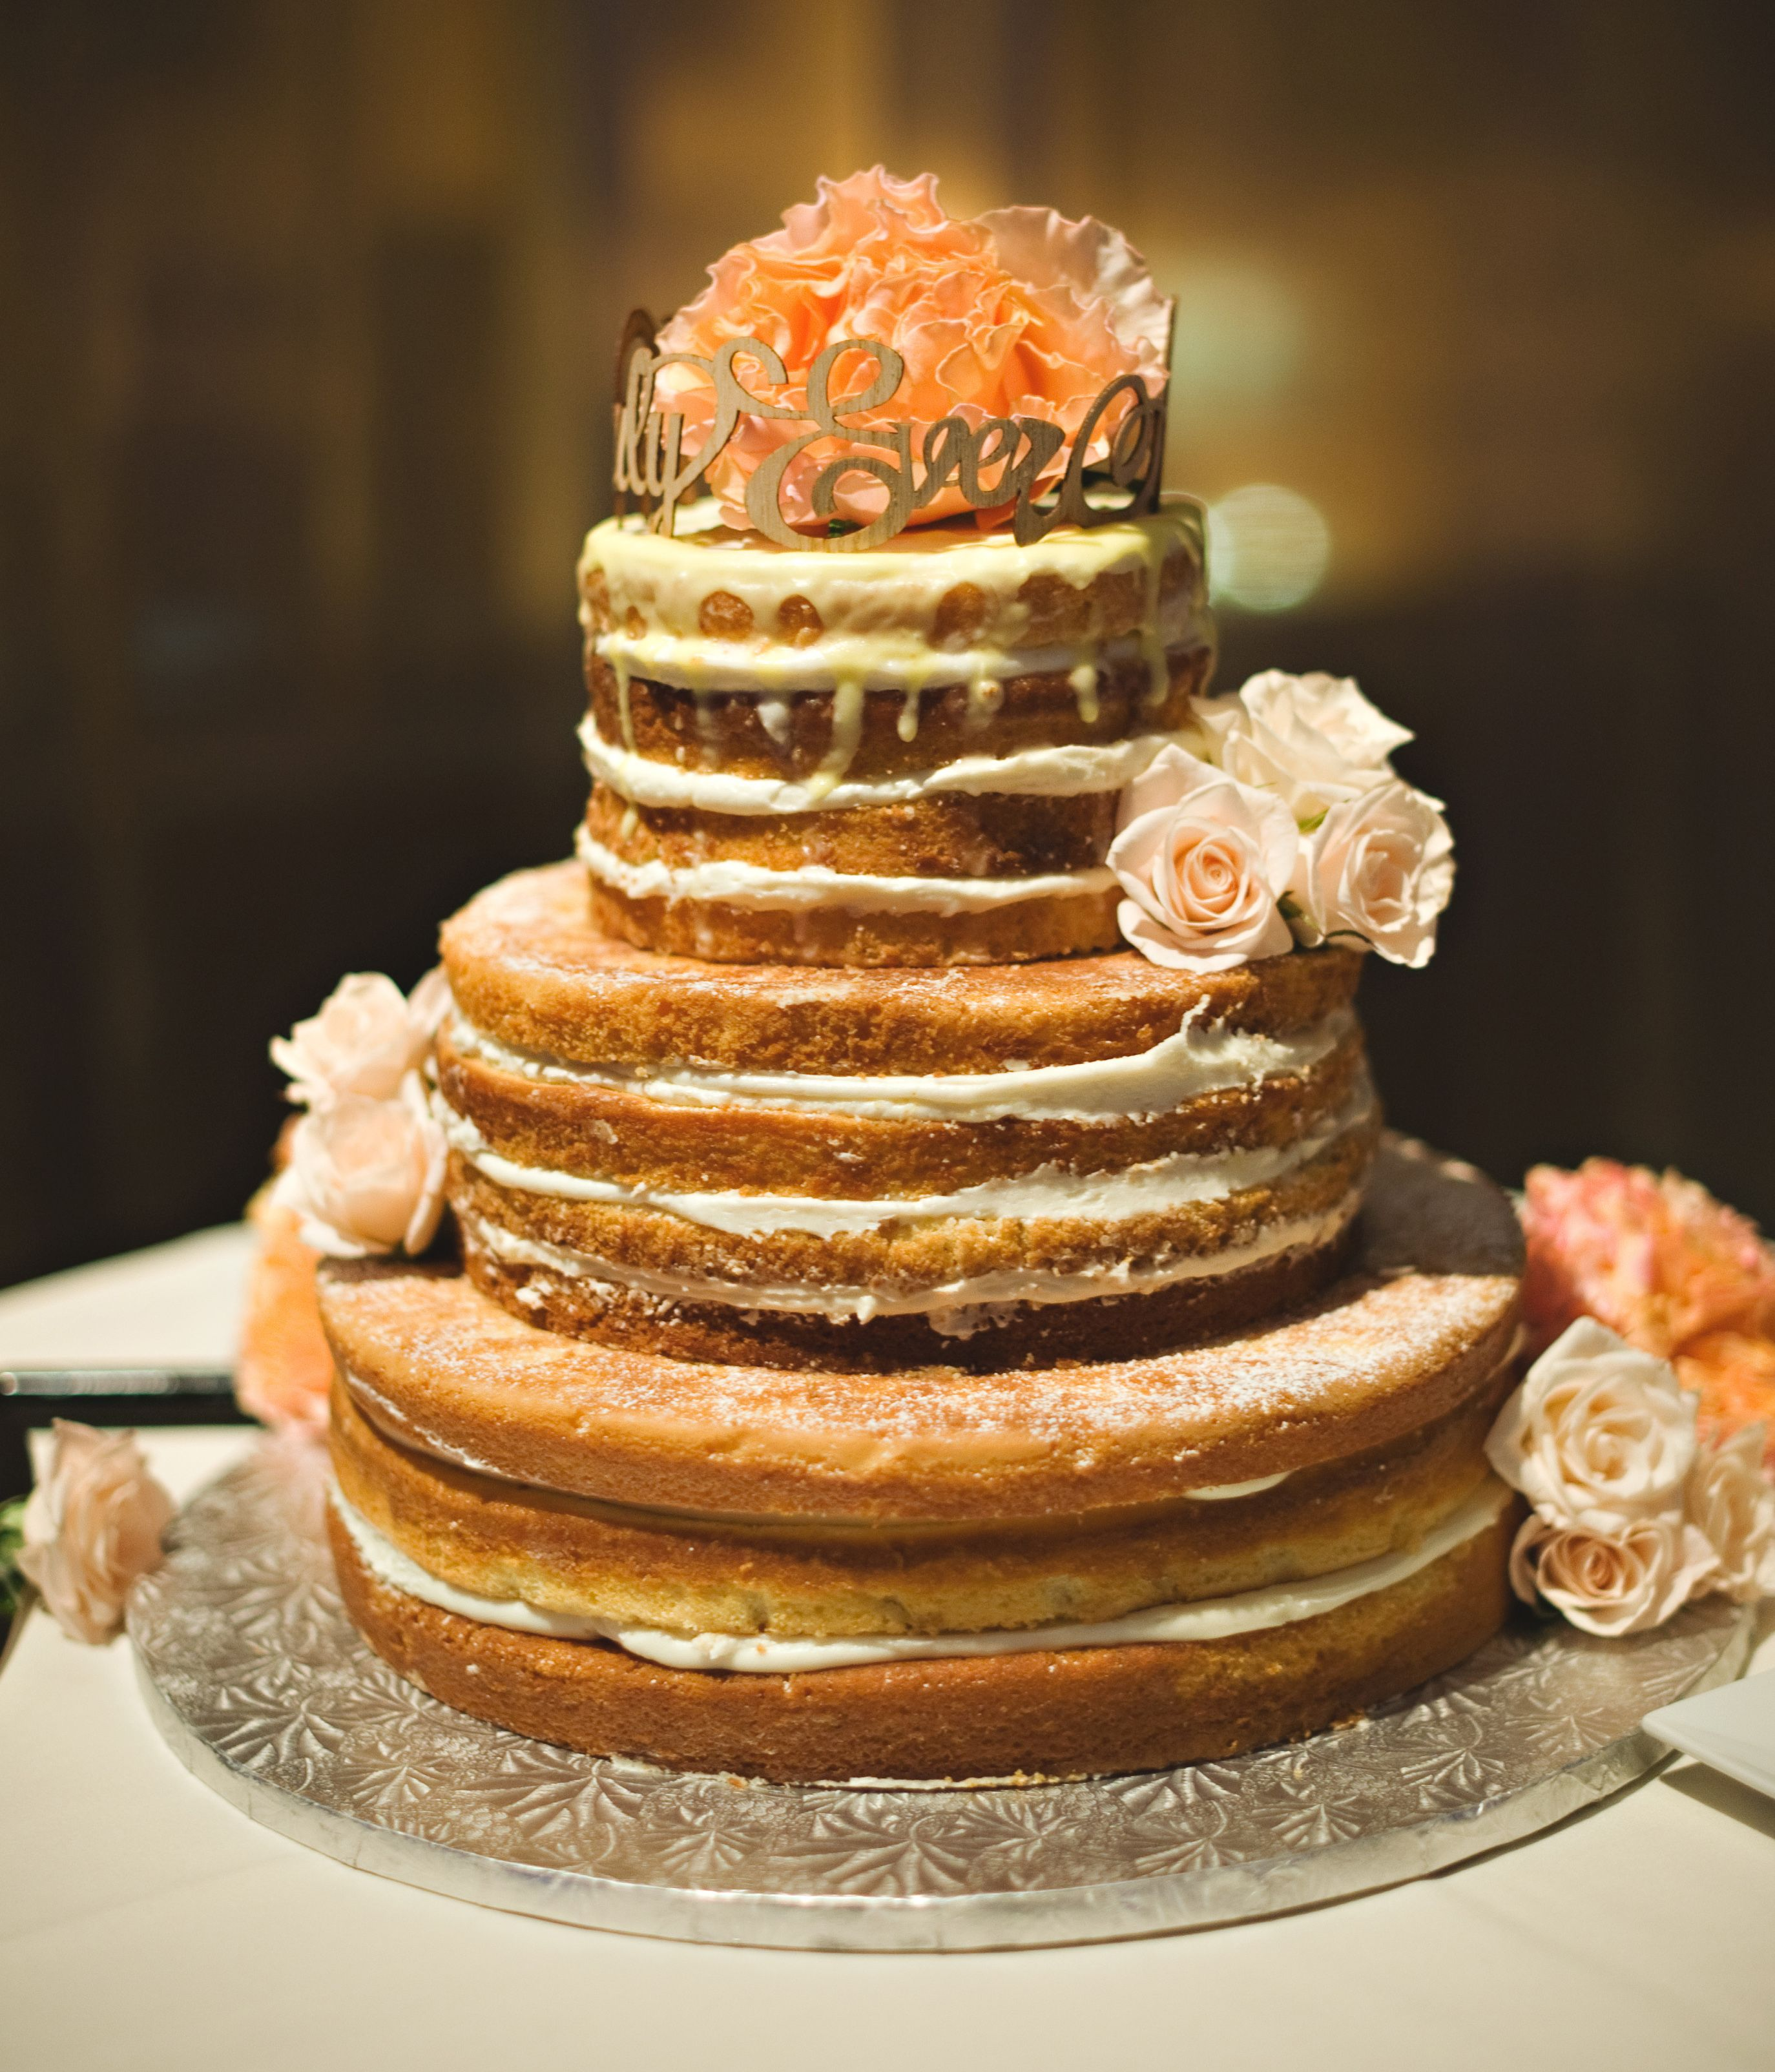 wedding cakes los angeles prices%0A Naked Deconstructed wedding cake w  lemon butter cream frosting and lemon  glaze